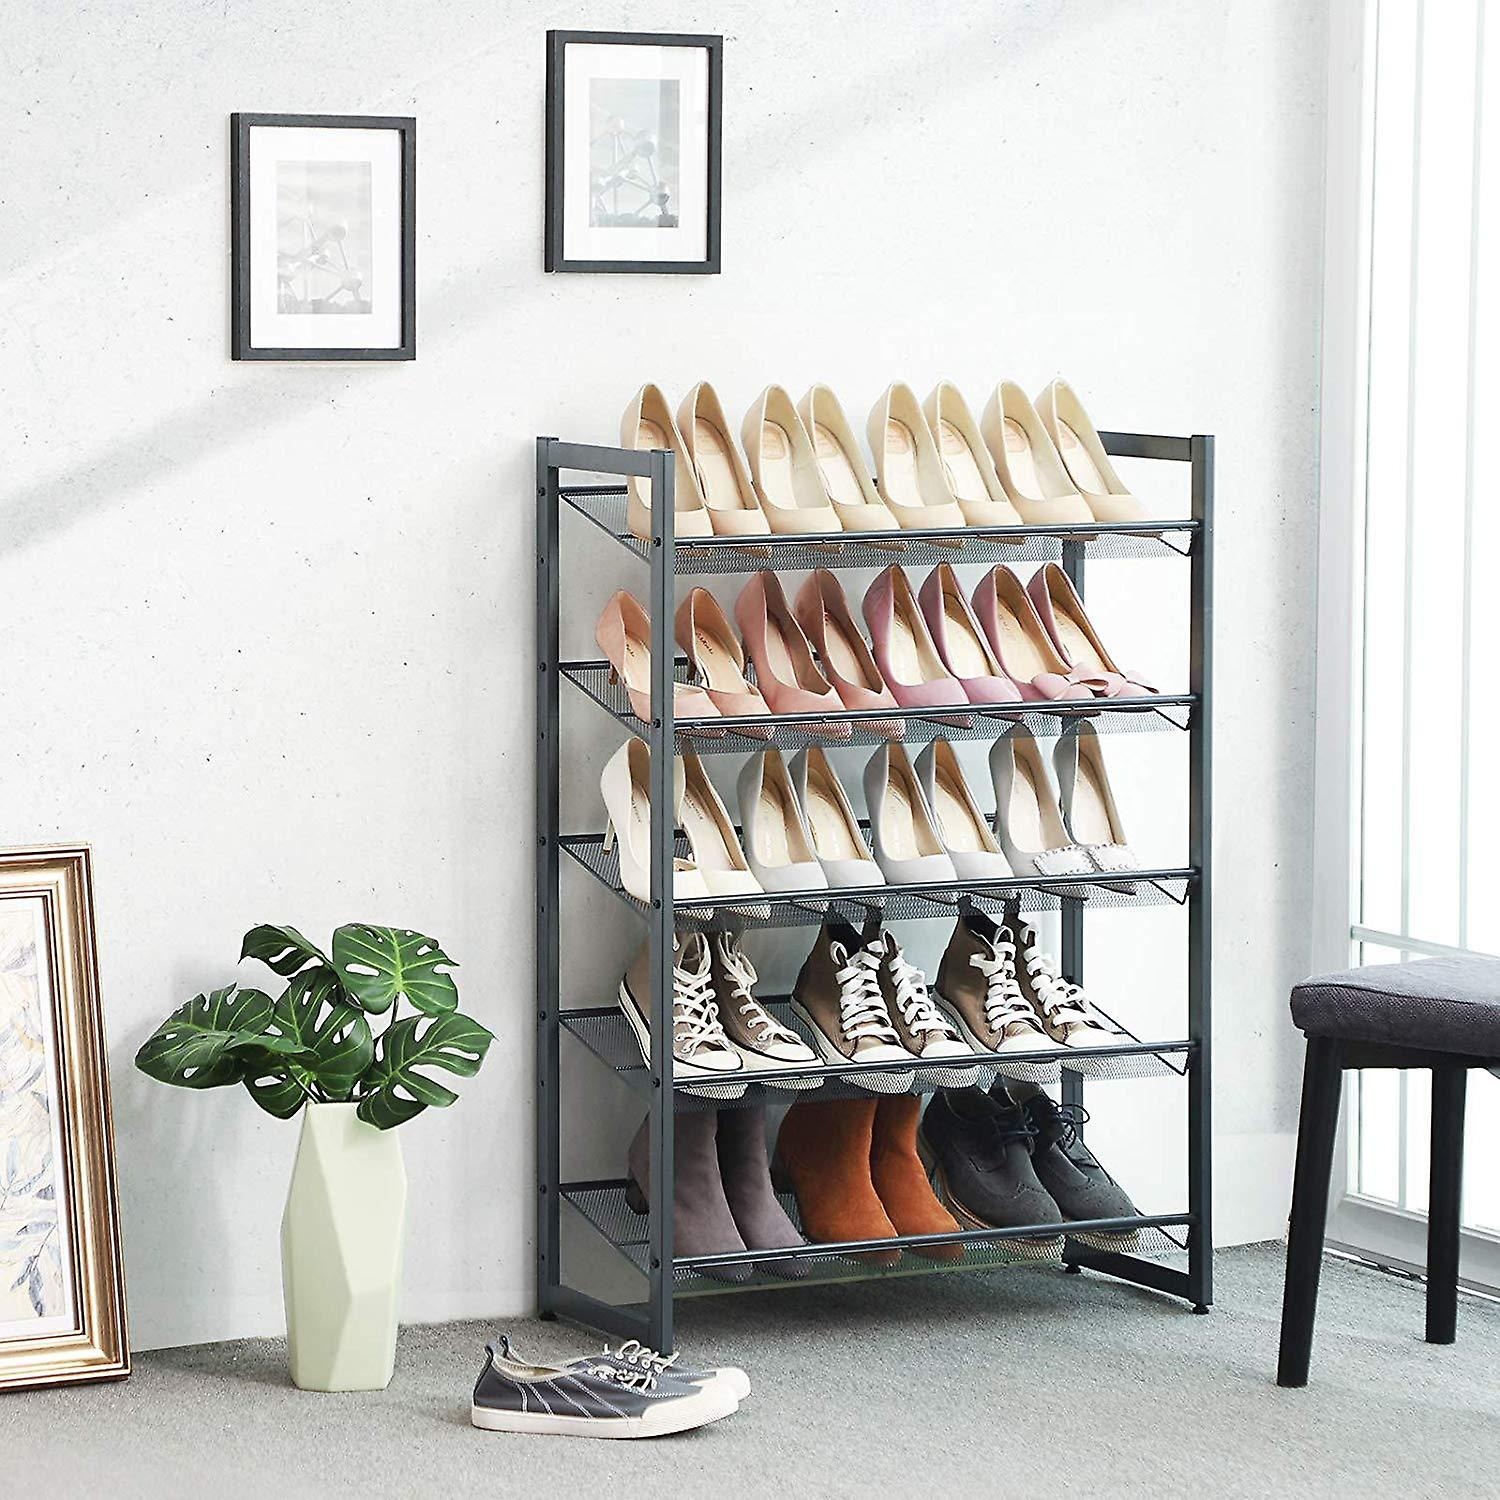 Shoe rack with 5 grilles-metal-grey